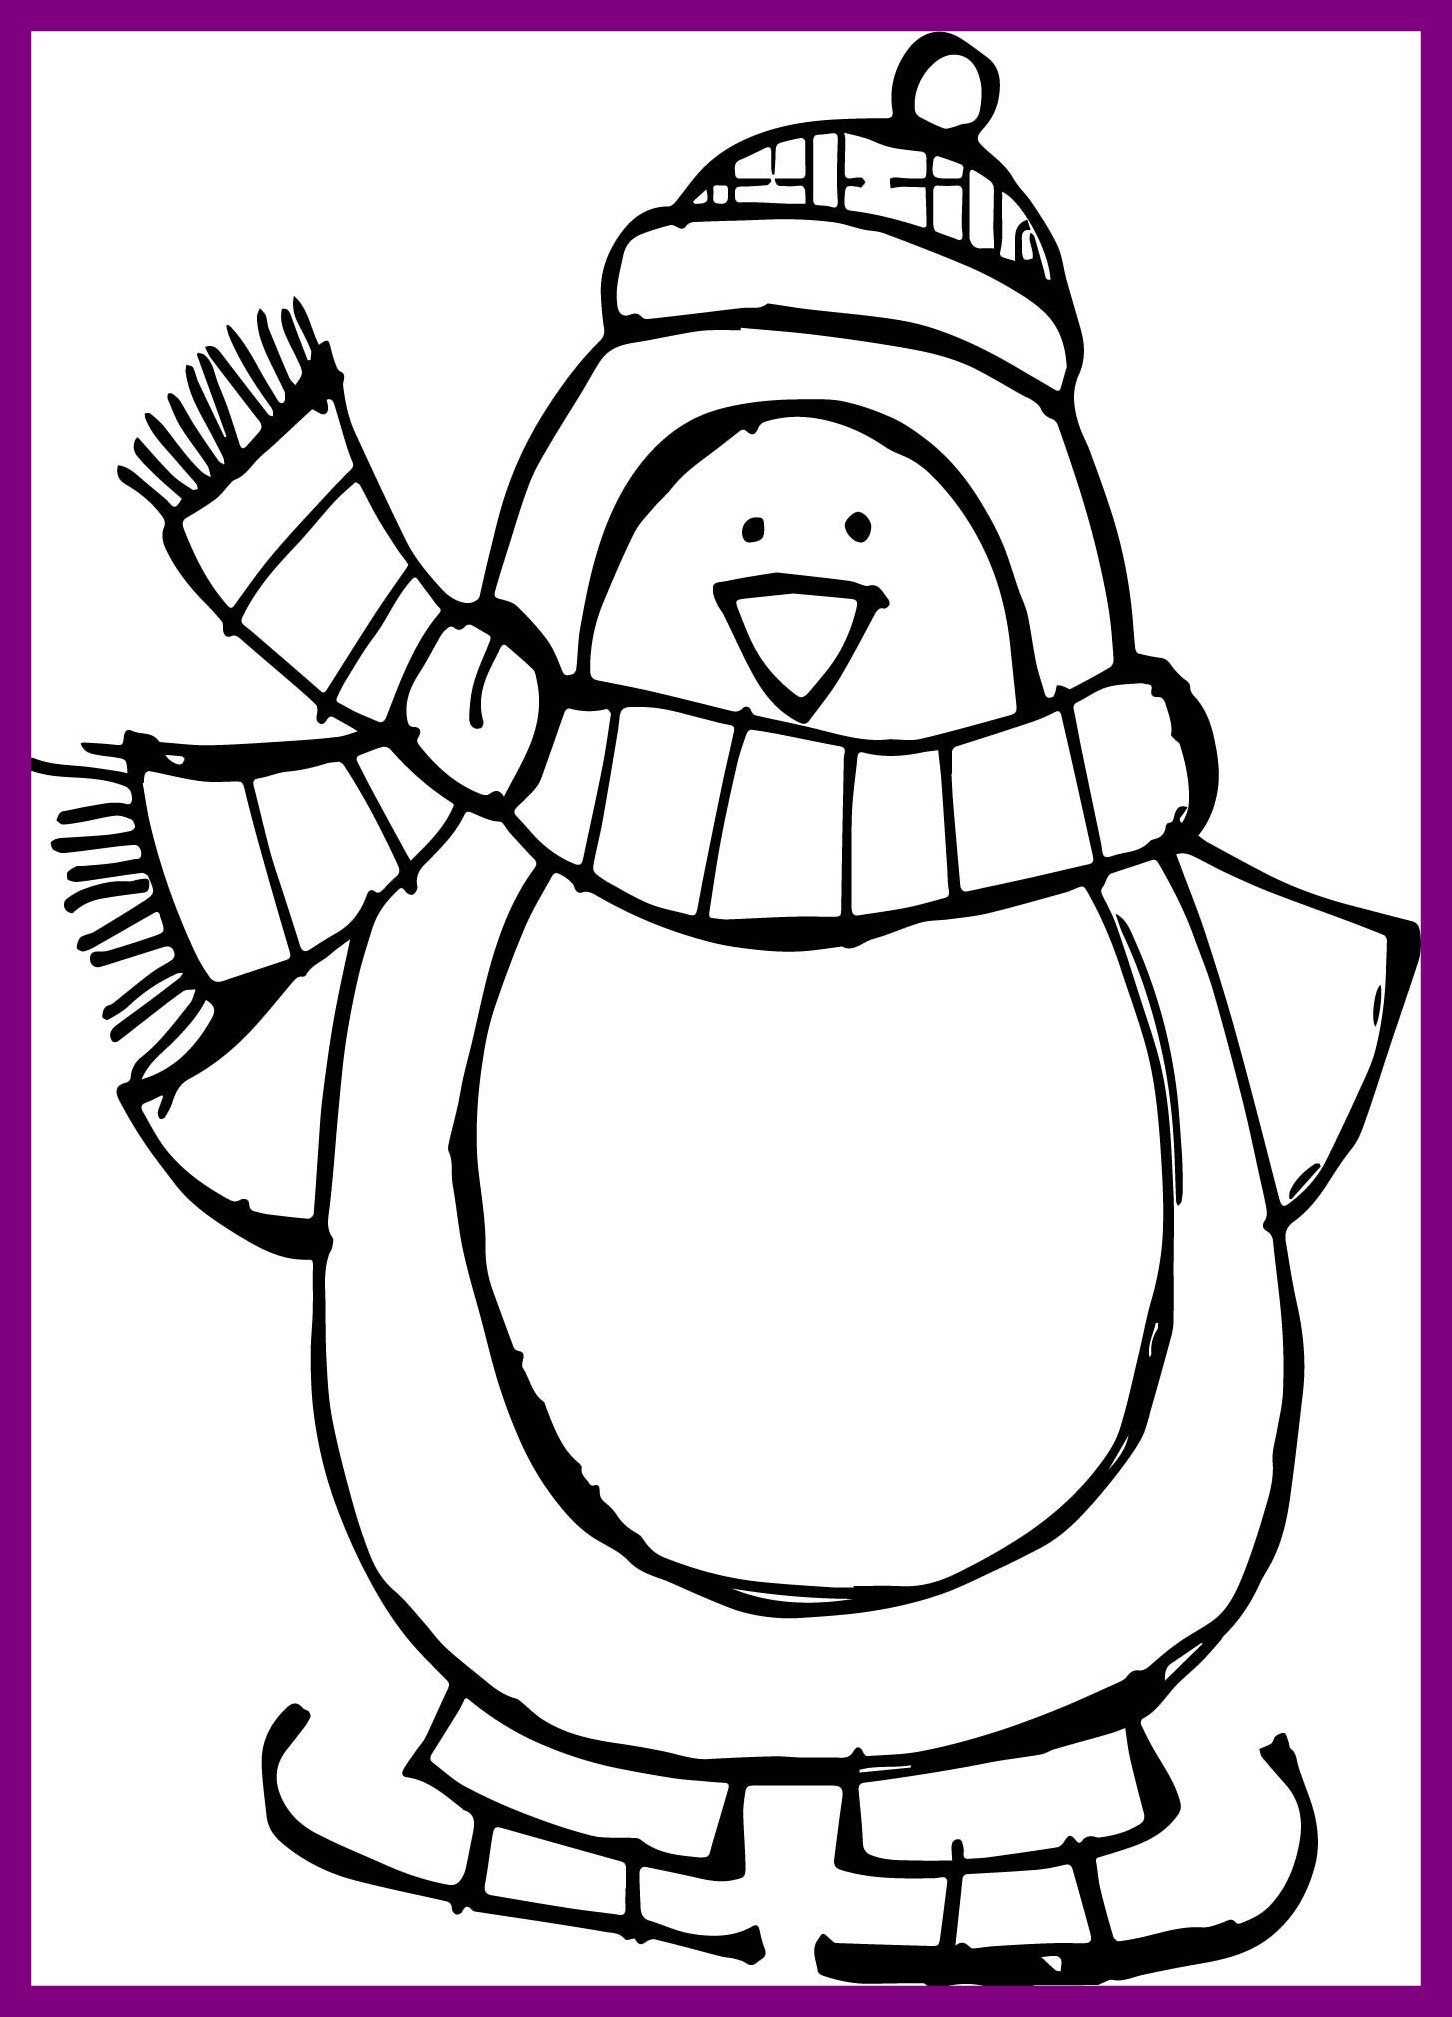 Winter Season Colouring Pages At Getdrawings